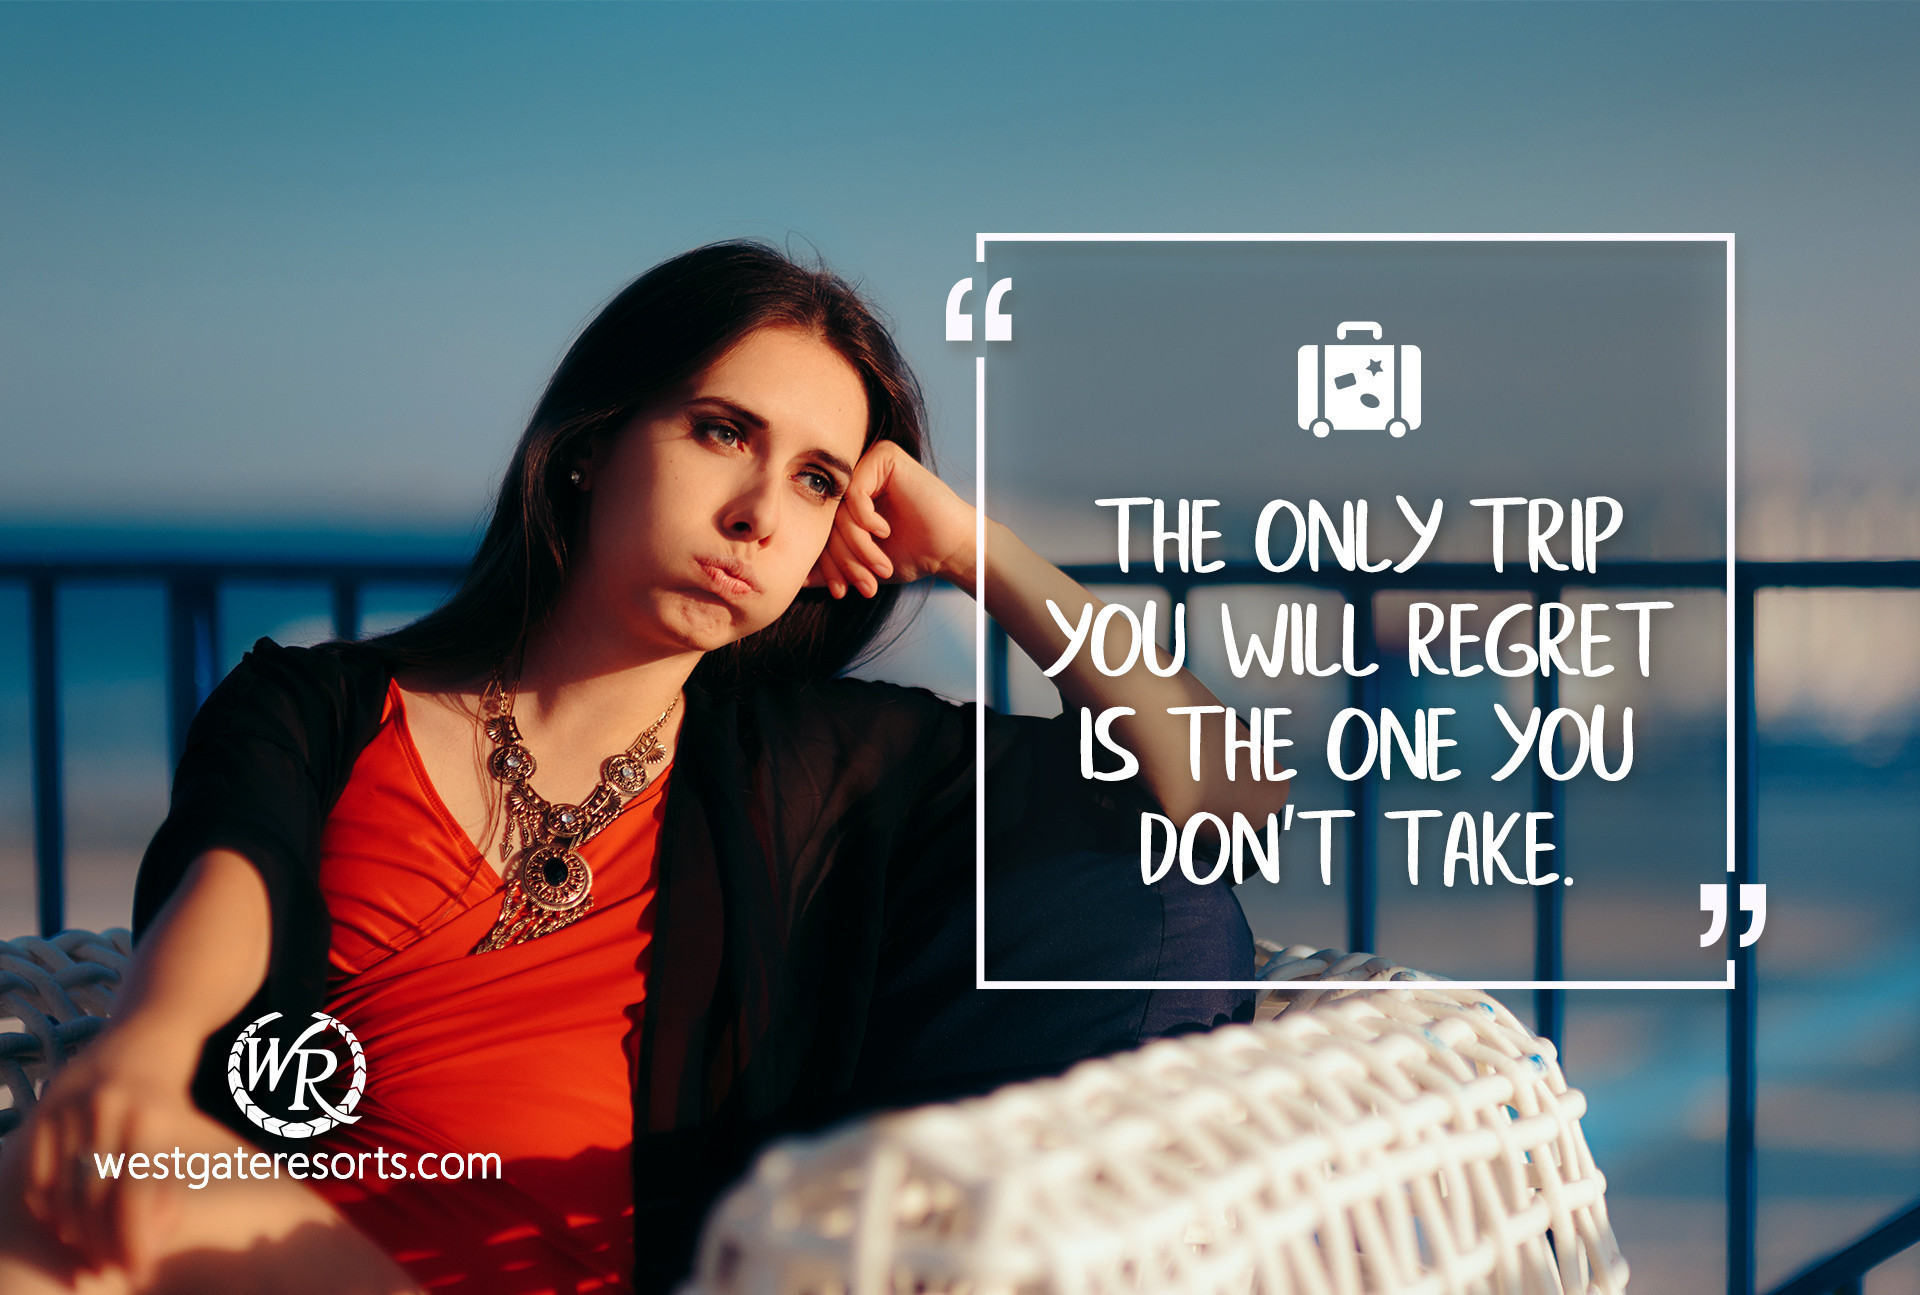 The Only Trip You Will Regret is The One You Don't Take. | Travel Motivational Quotes | Quotes About Travel